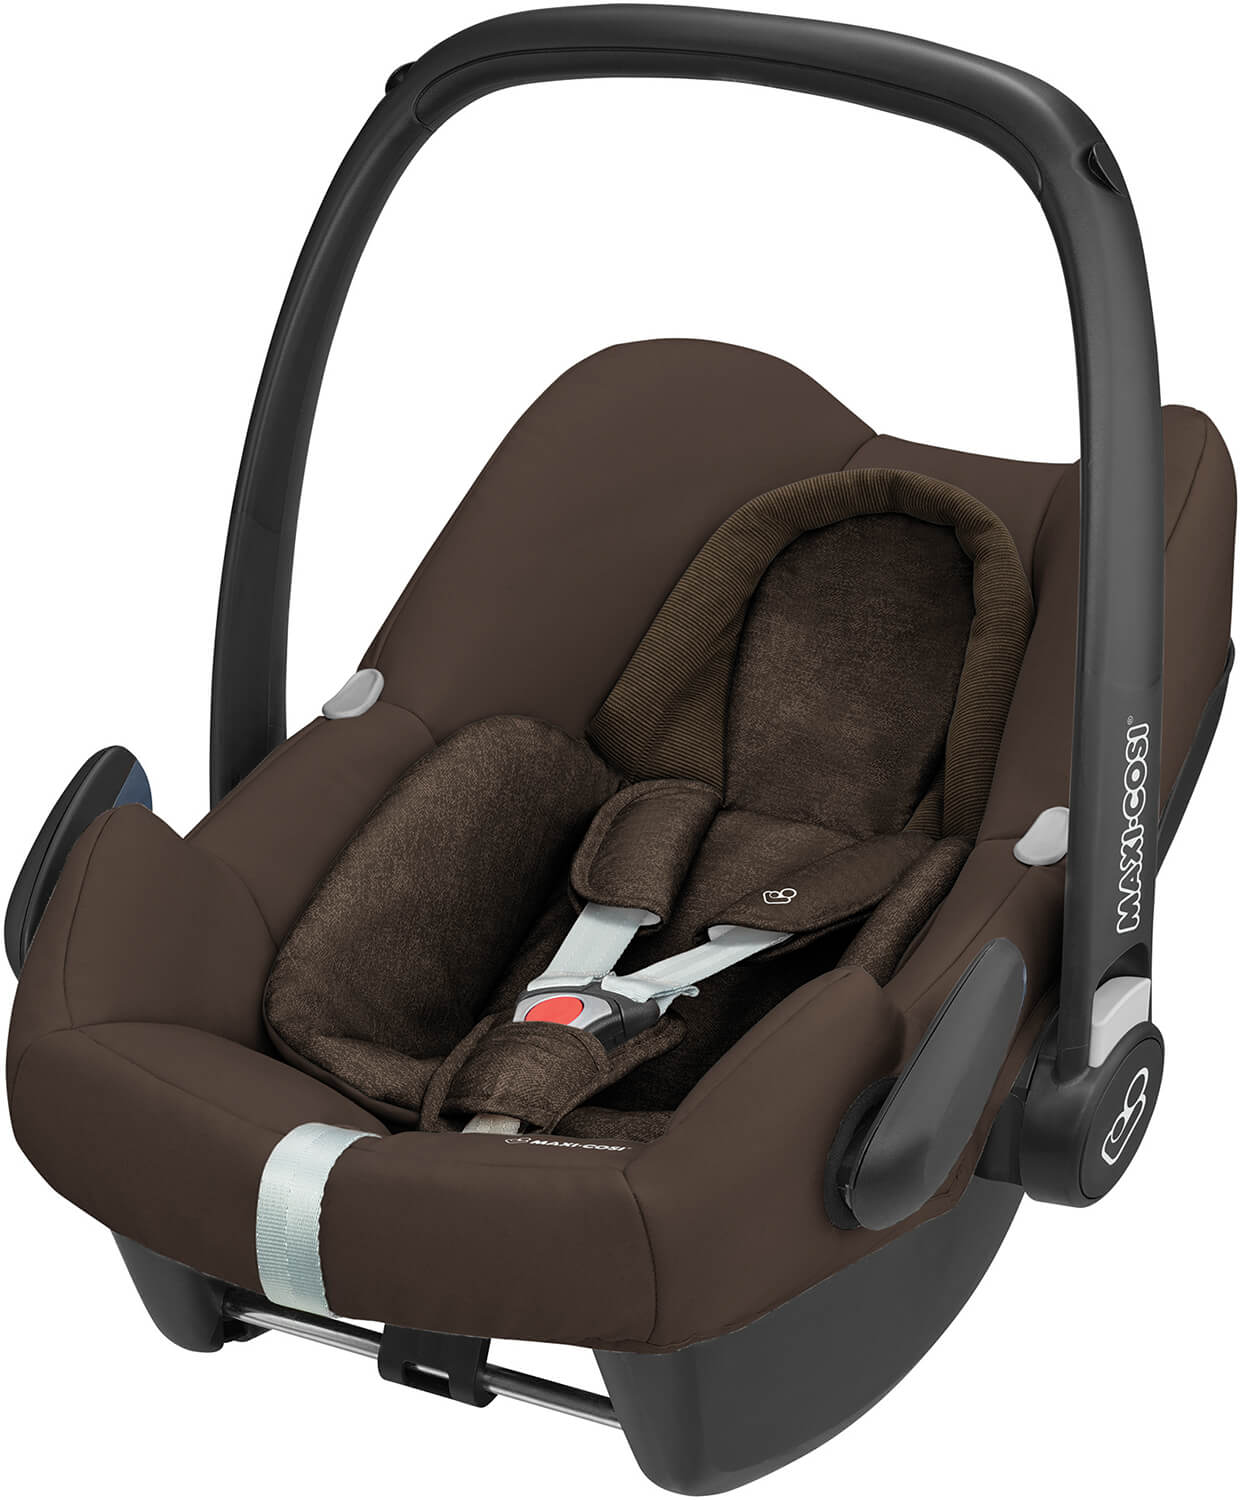 maxi cosi rock nomad brown i size babyschale 2018. Black Bedroom Furniture Sets. Home Design Ideas